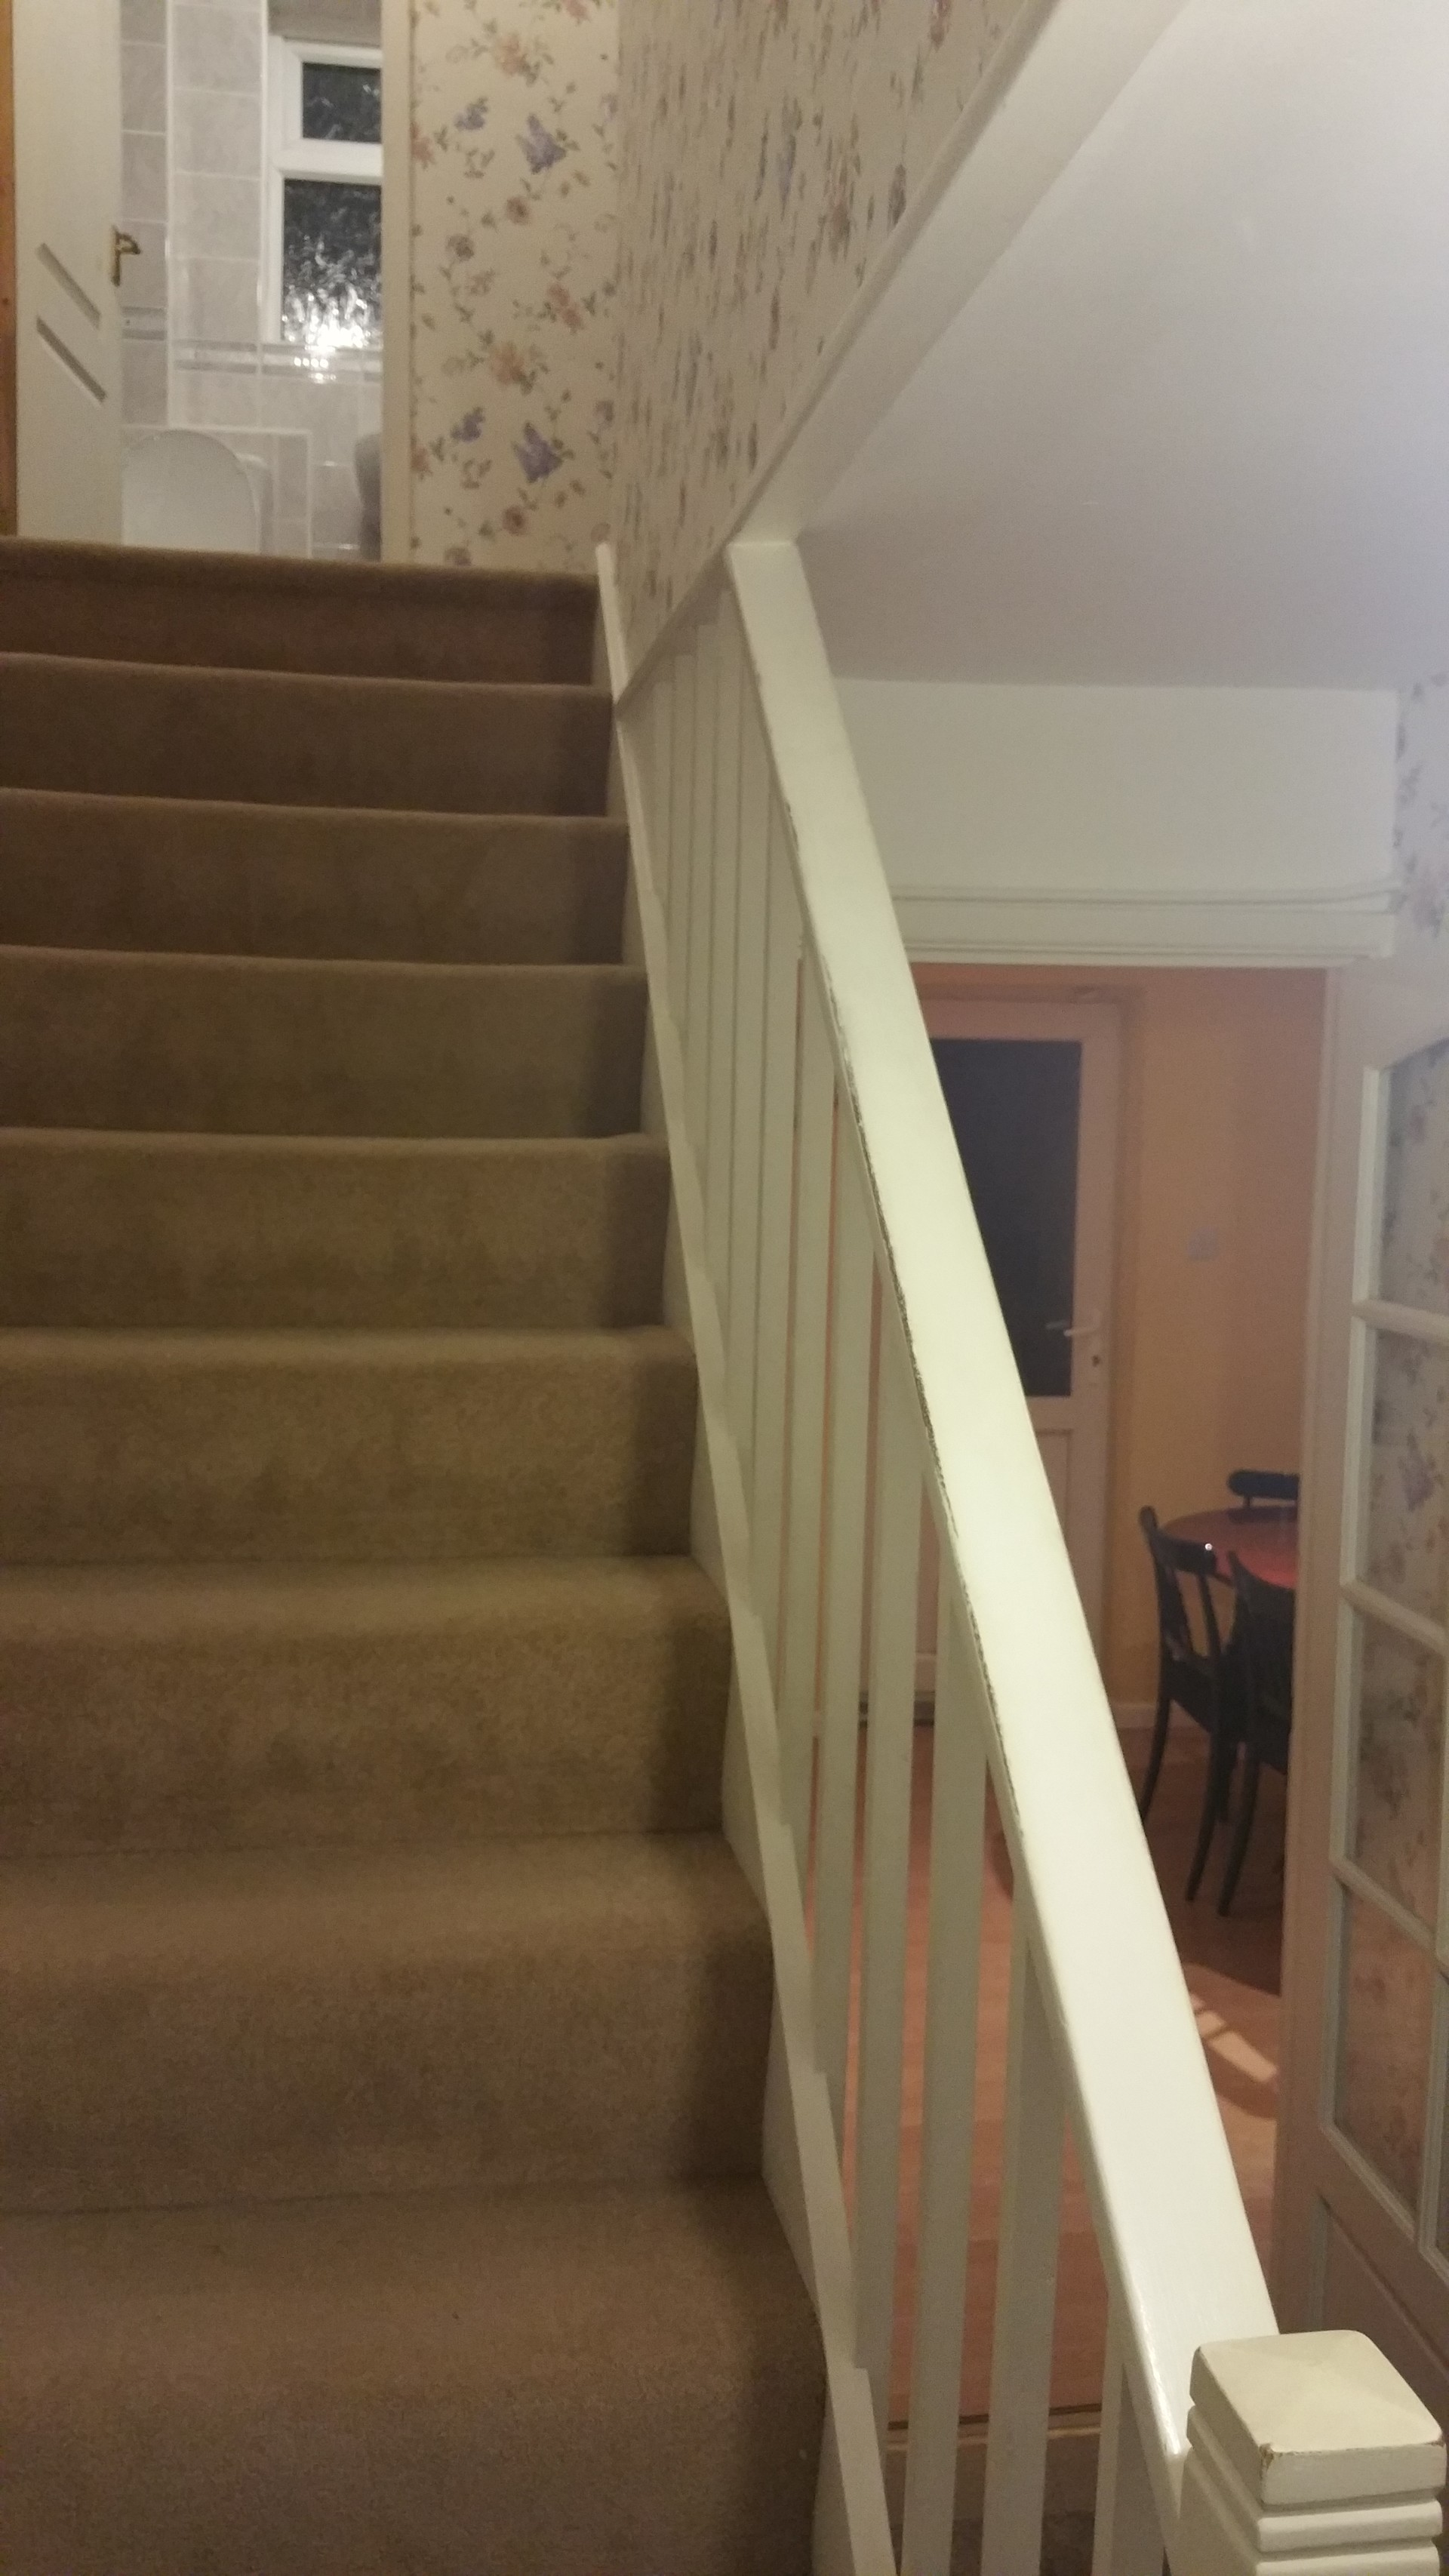 2 Double rooms in a shared Semi detached house in the Millbrook